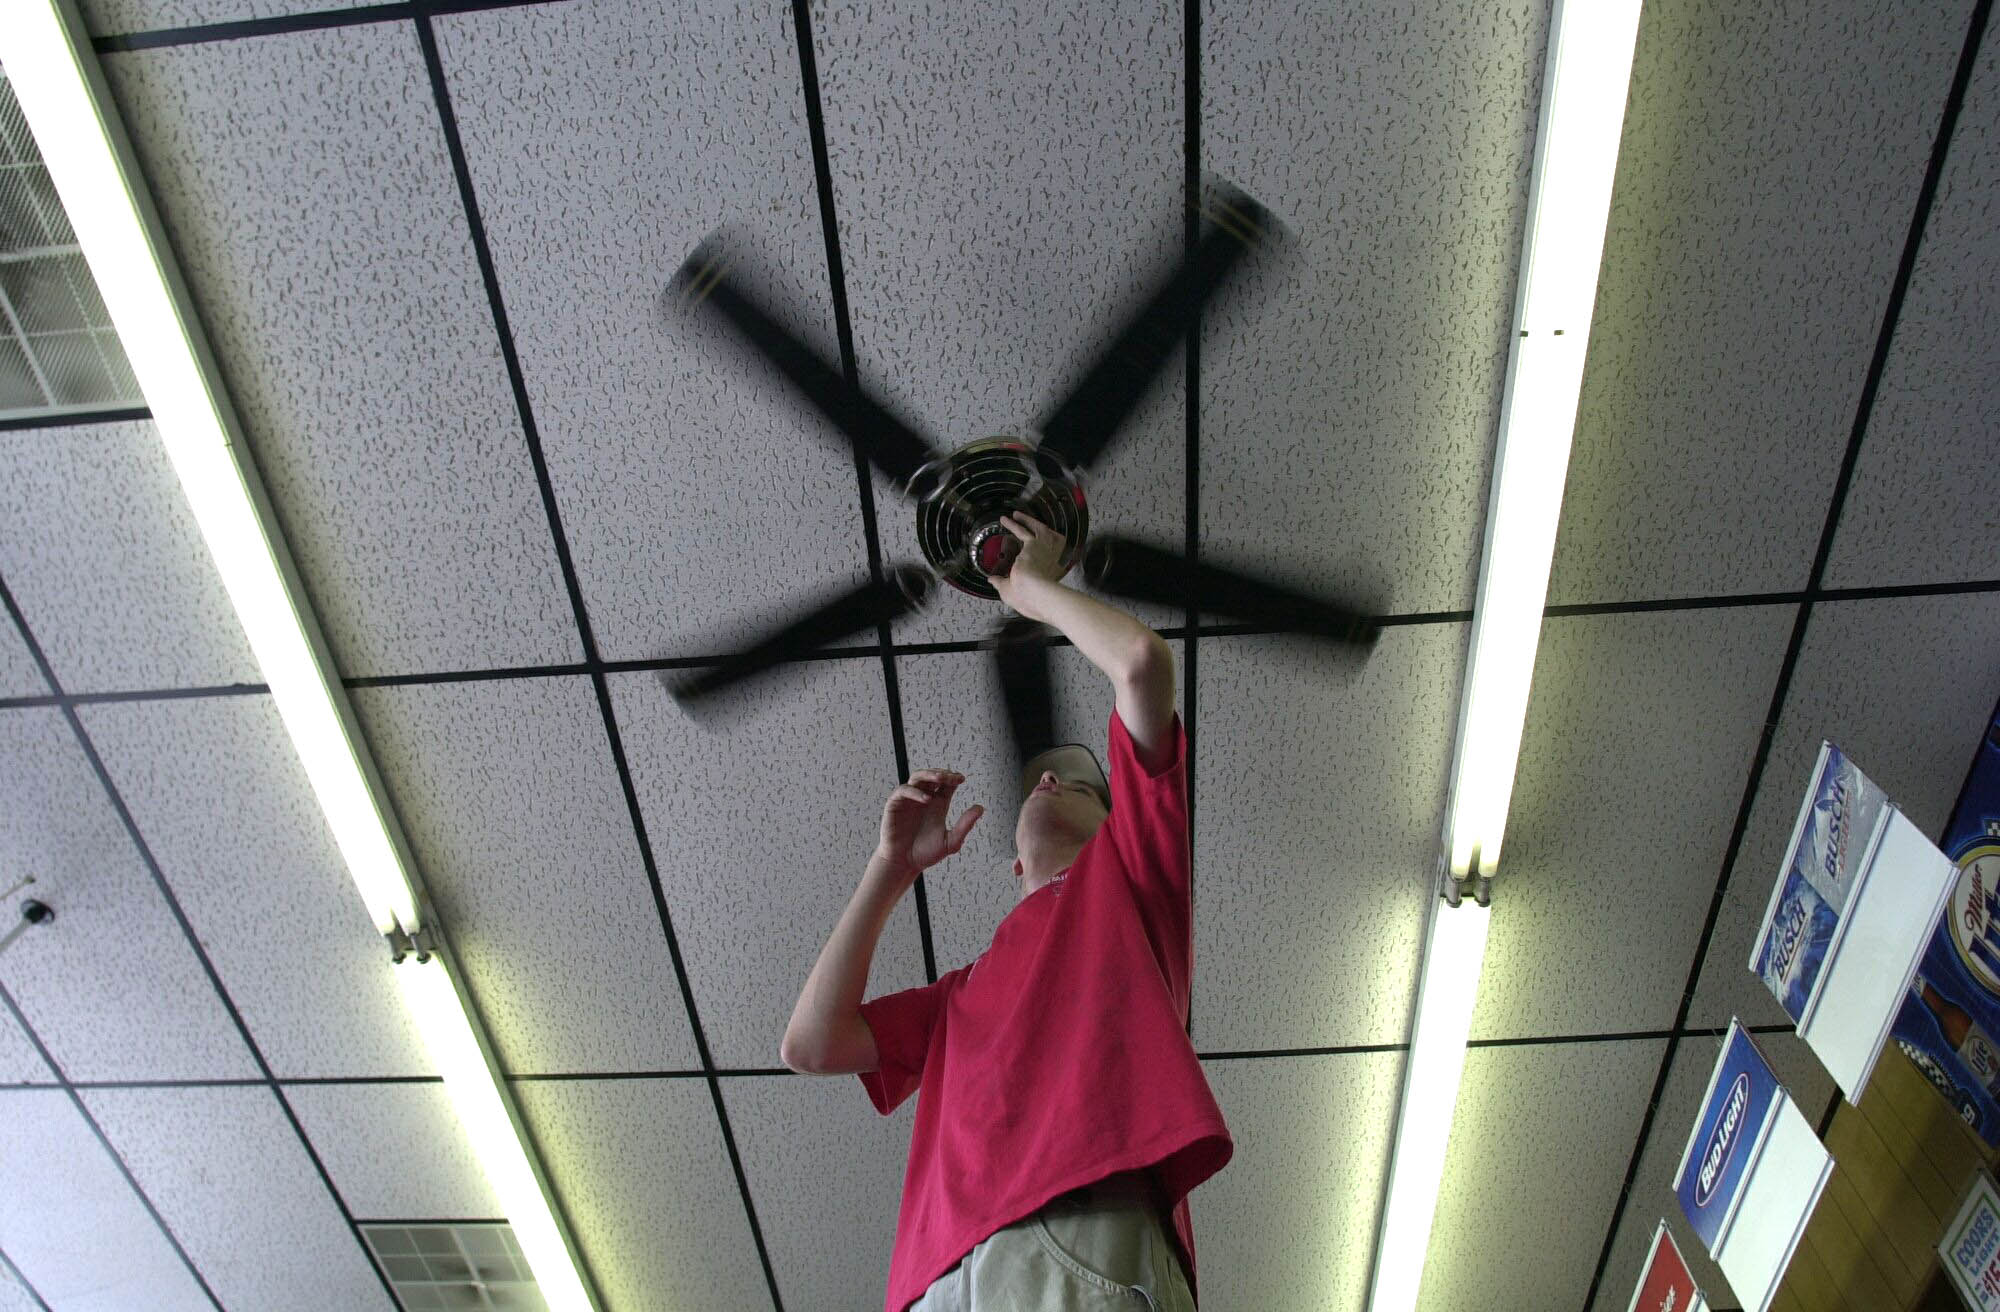 Ceiling fans help cool people, but not rooms, so turn them off when you leave.  (Robert Kirkham/News file photo)